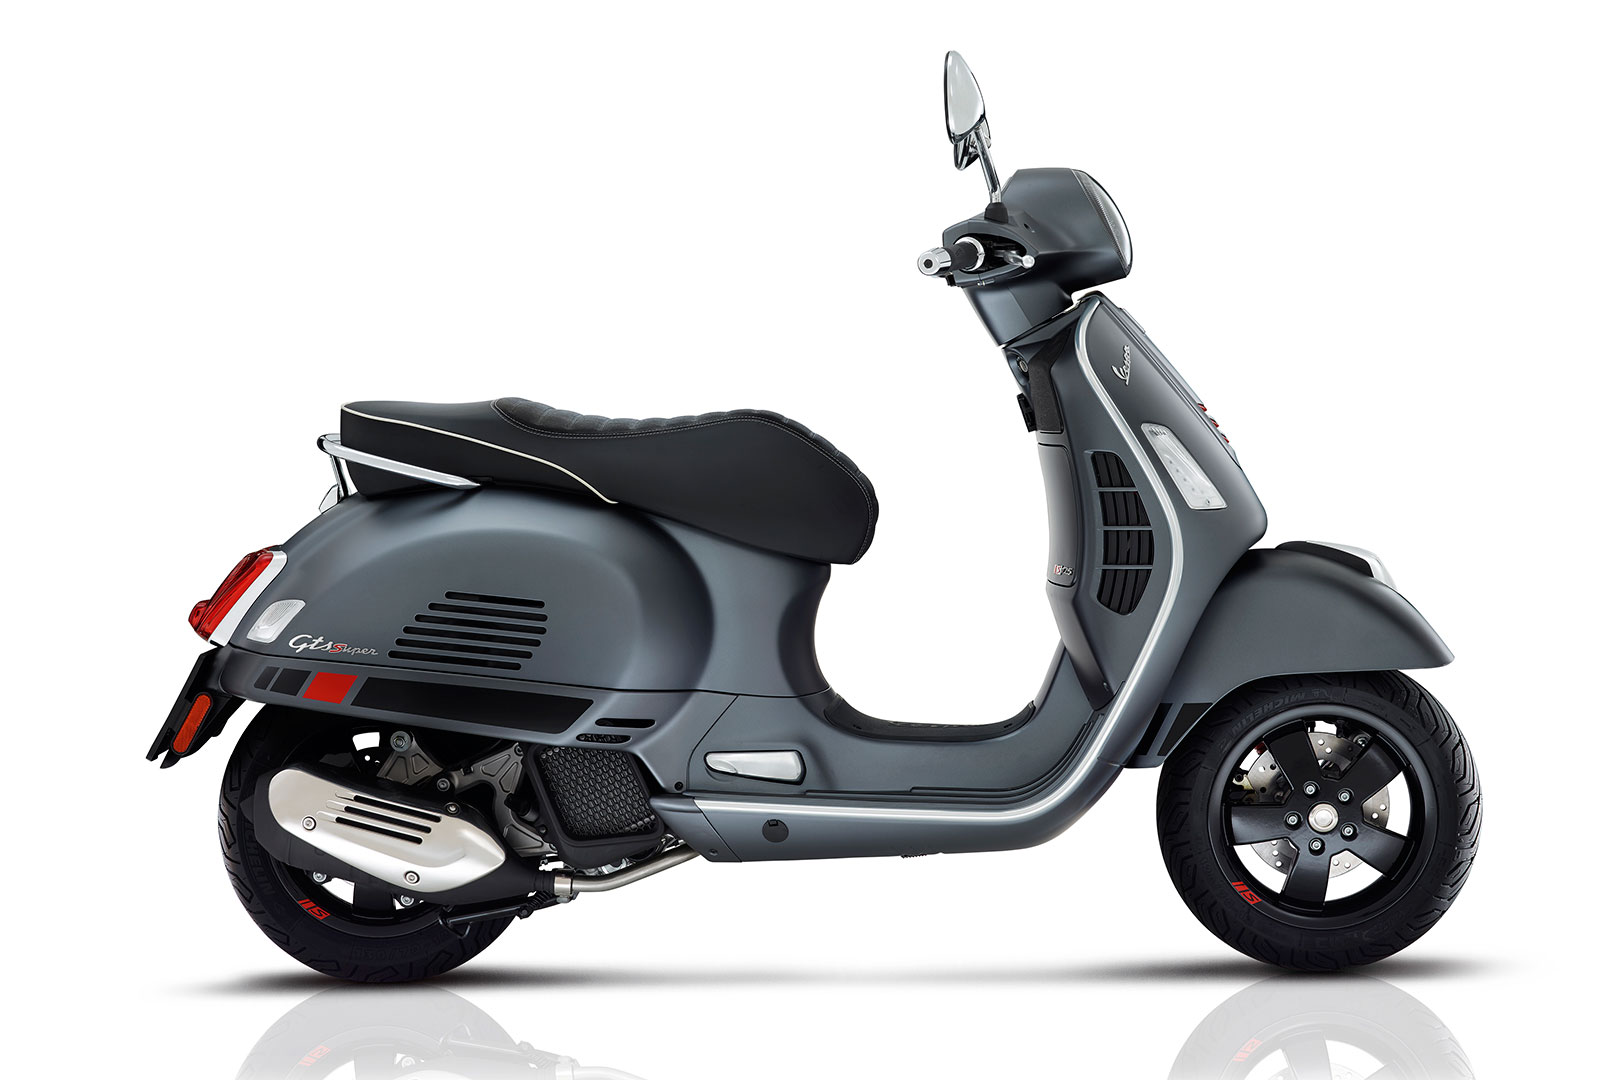 Achat Vespa GTS SuperSport ABS 125 cm3 neuf à Nice chez Scoot Center-2